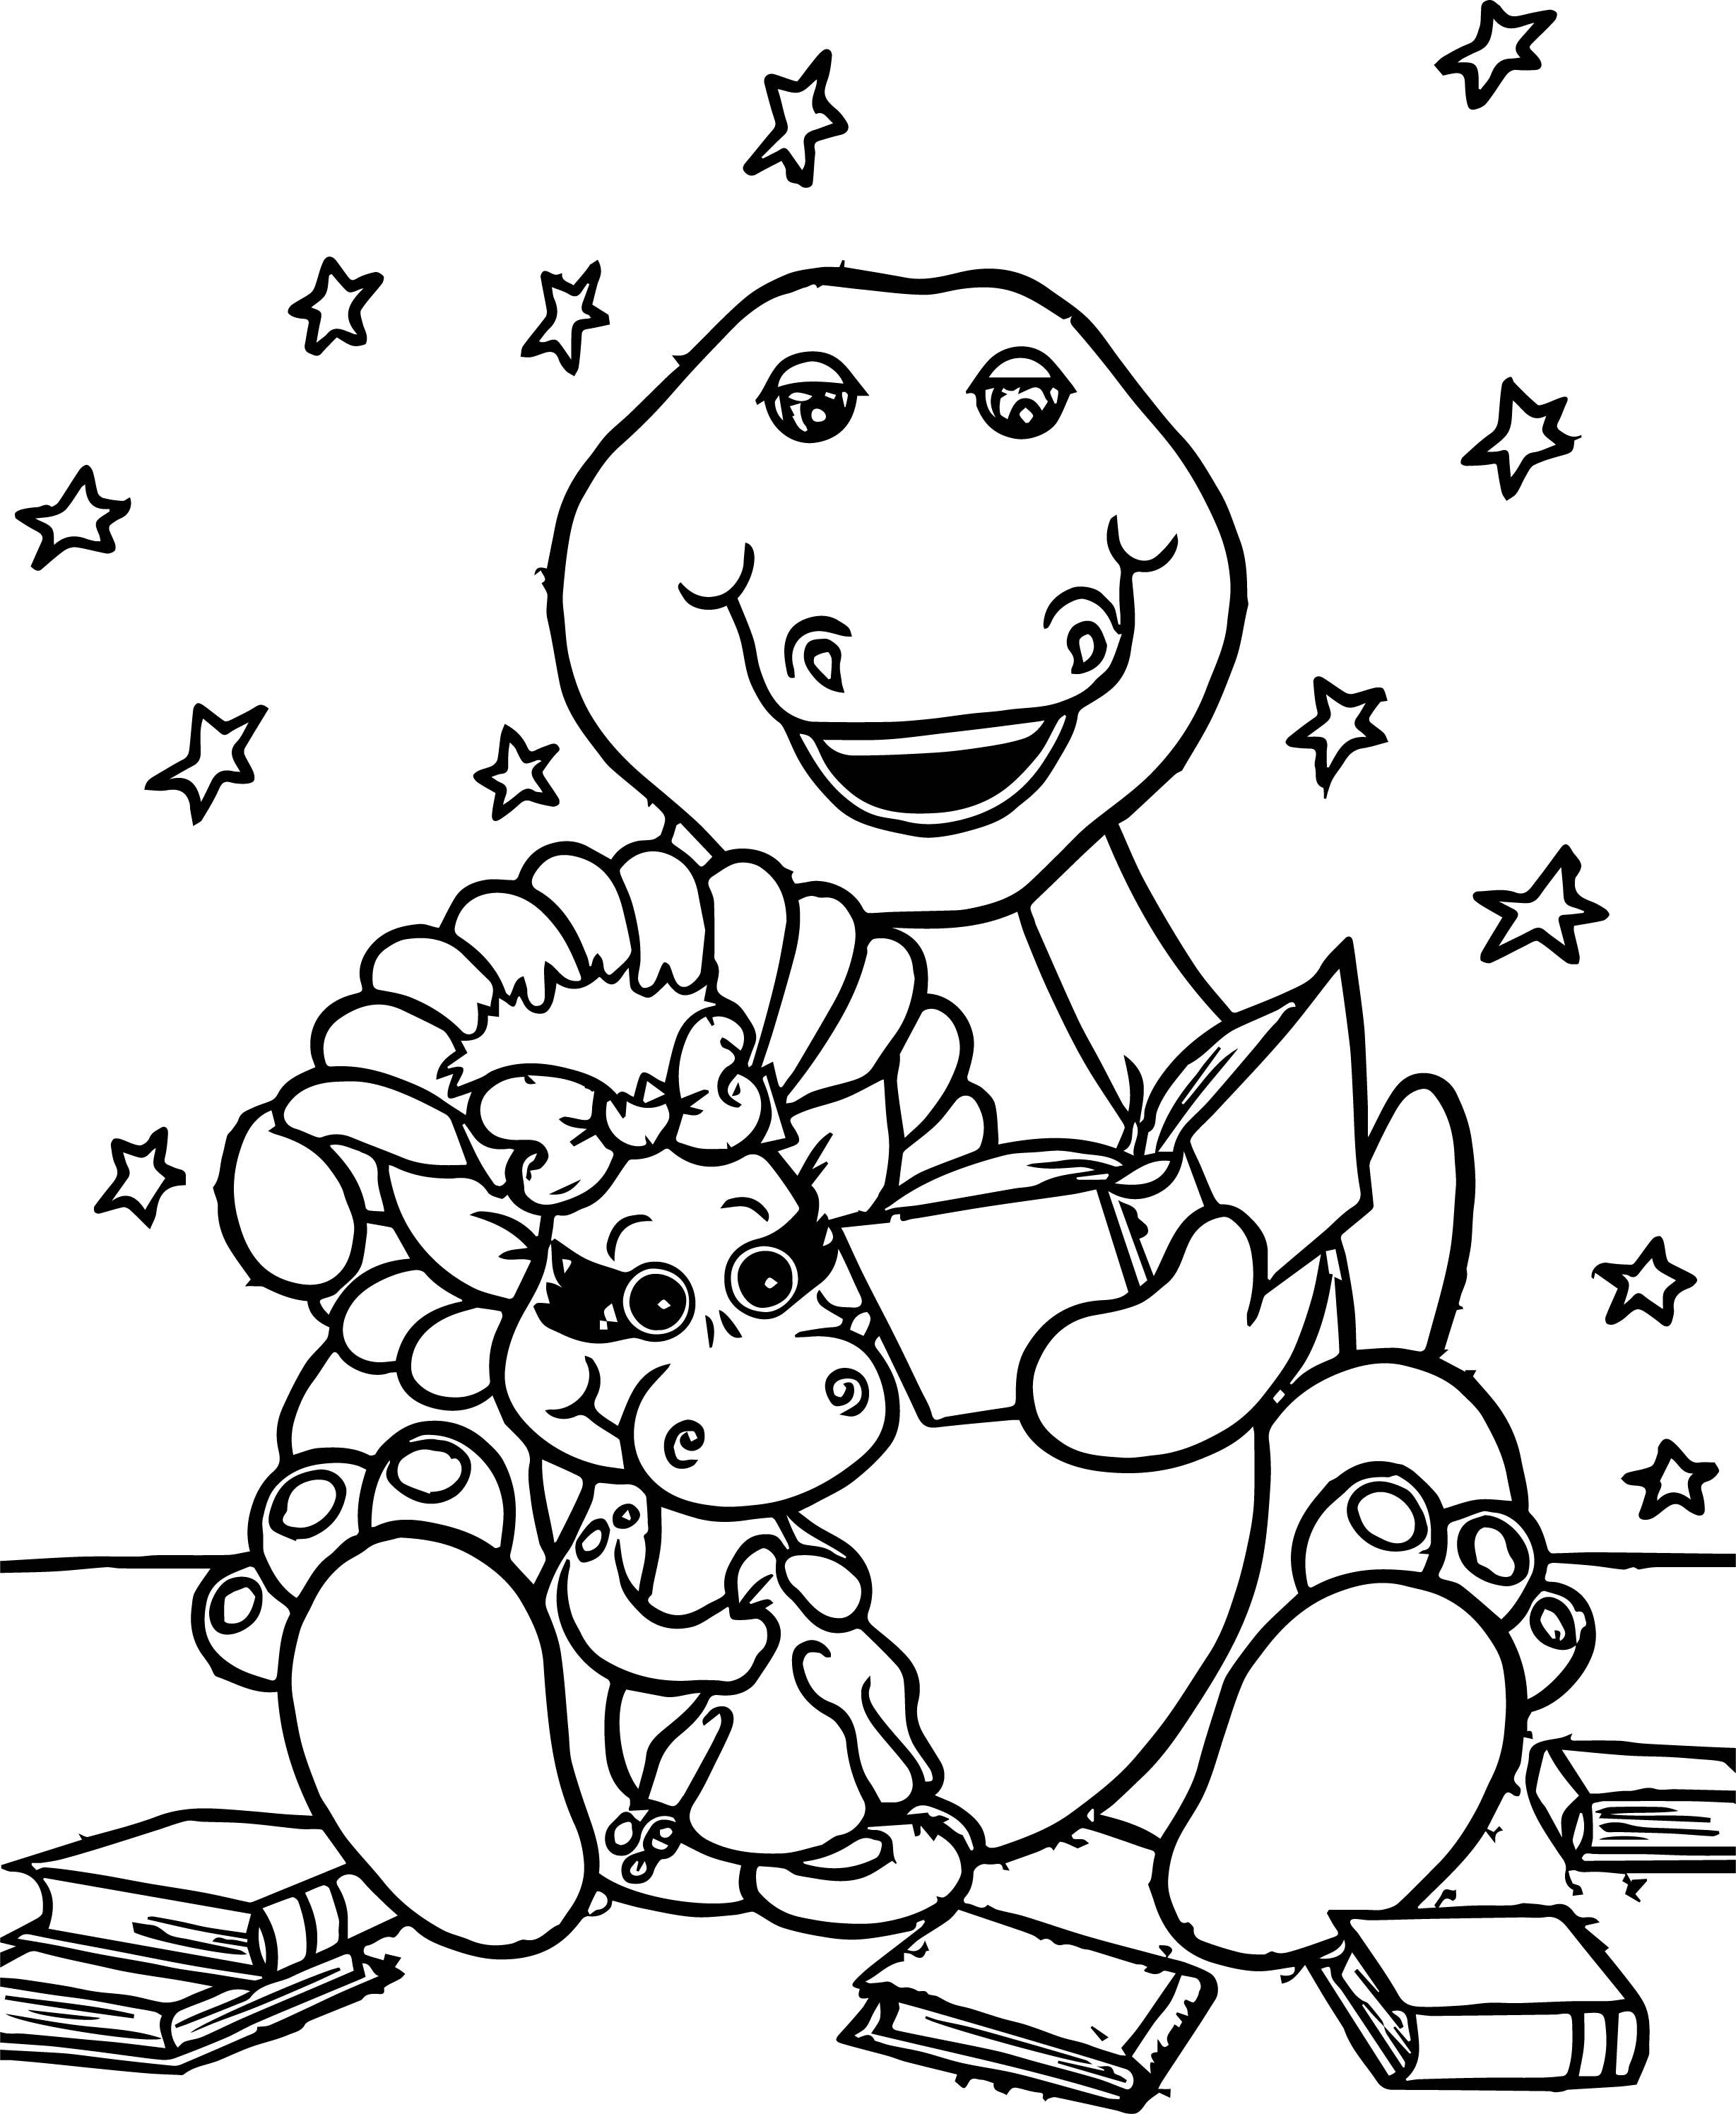 Awesome Barney Reads To Baby Bop Coloring Page Cartoon Coloring Pages Printable Coloring Pages Princess Coloring Pages